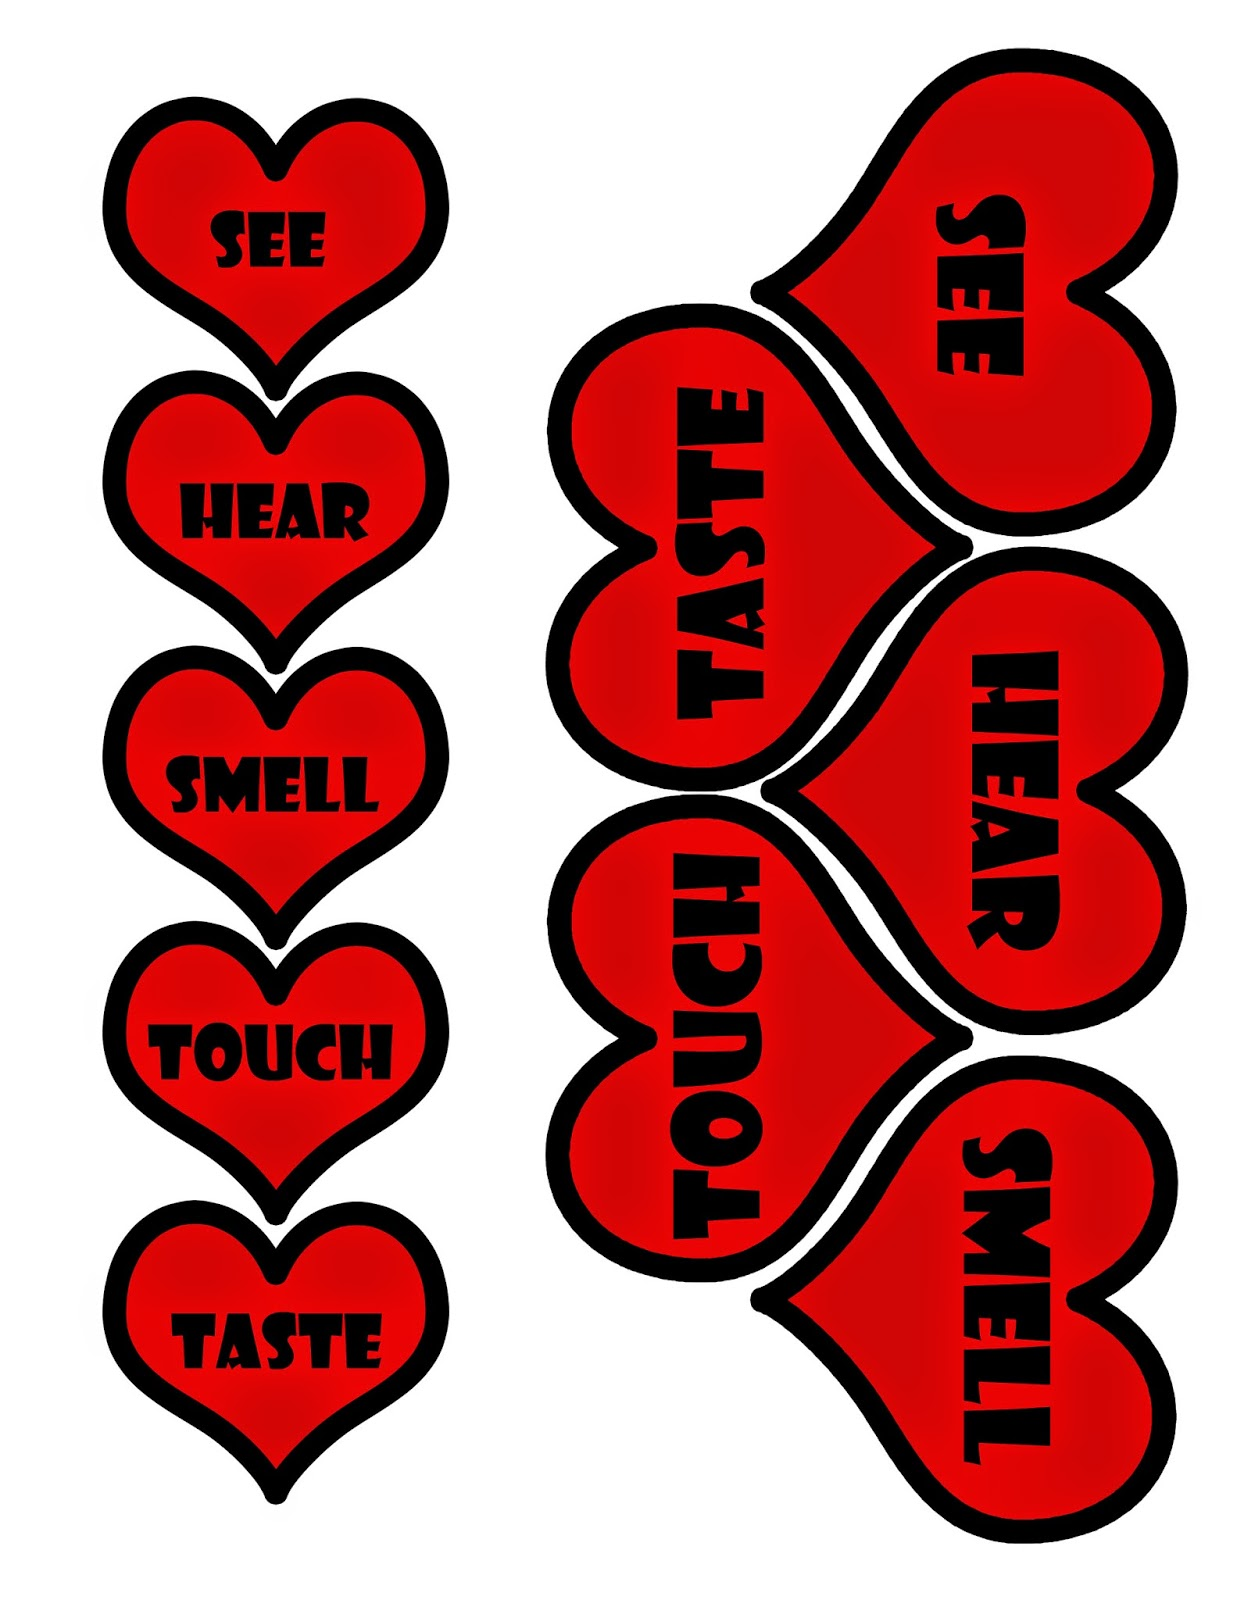 UPDATE: People have asked if I could include a printable version of the heart-shaped labels. So, here goes!